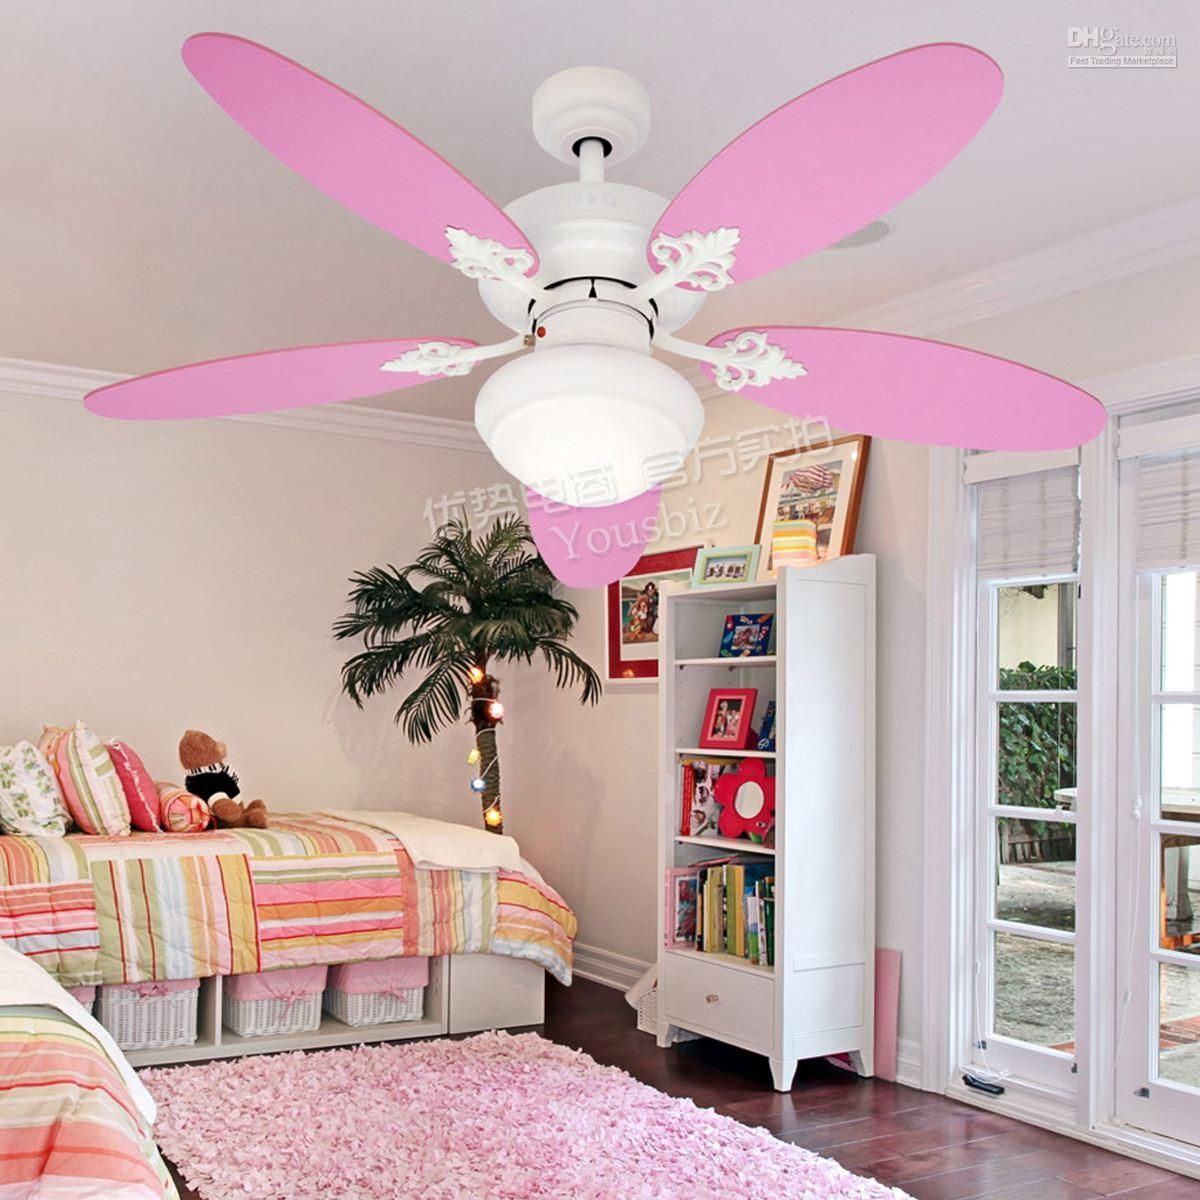 Charming Pink Ceiling Fans With Lights For Teenage Girl Bedroom #Interior #Design